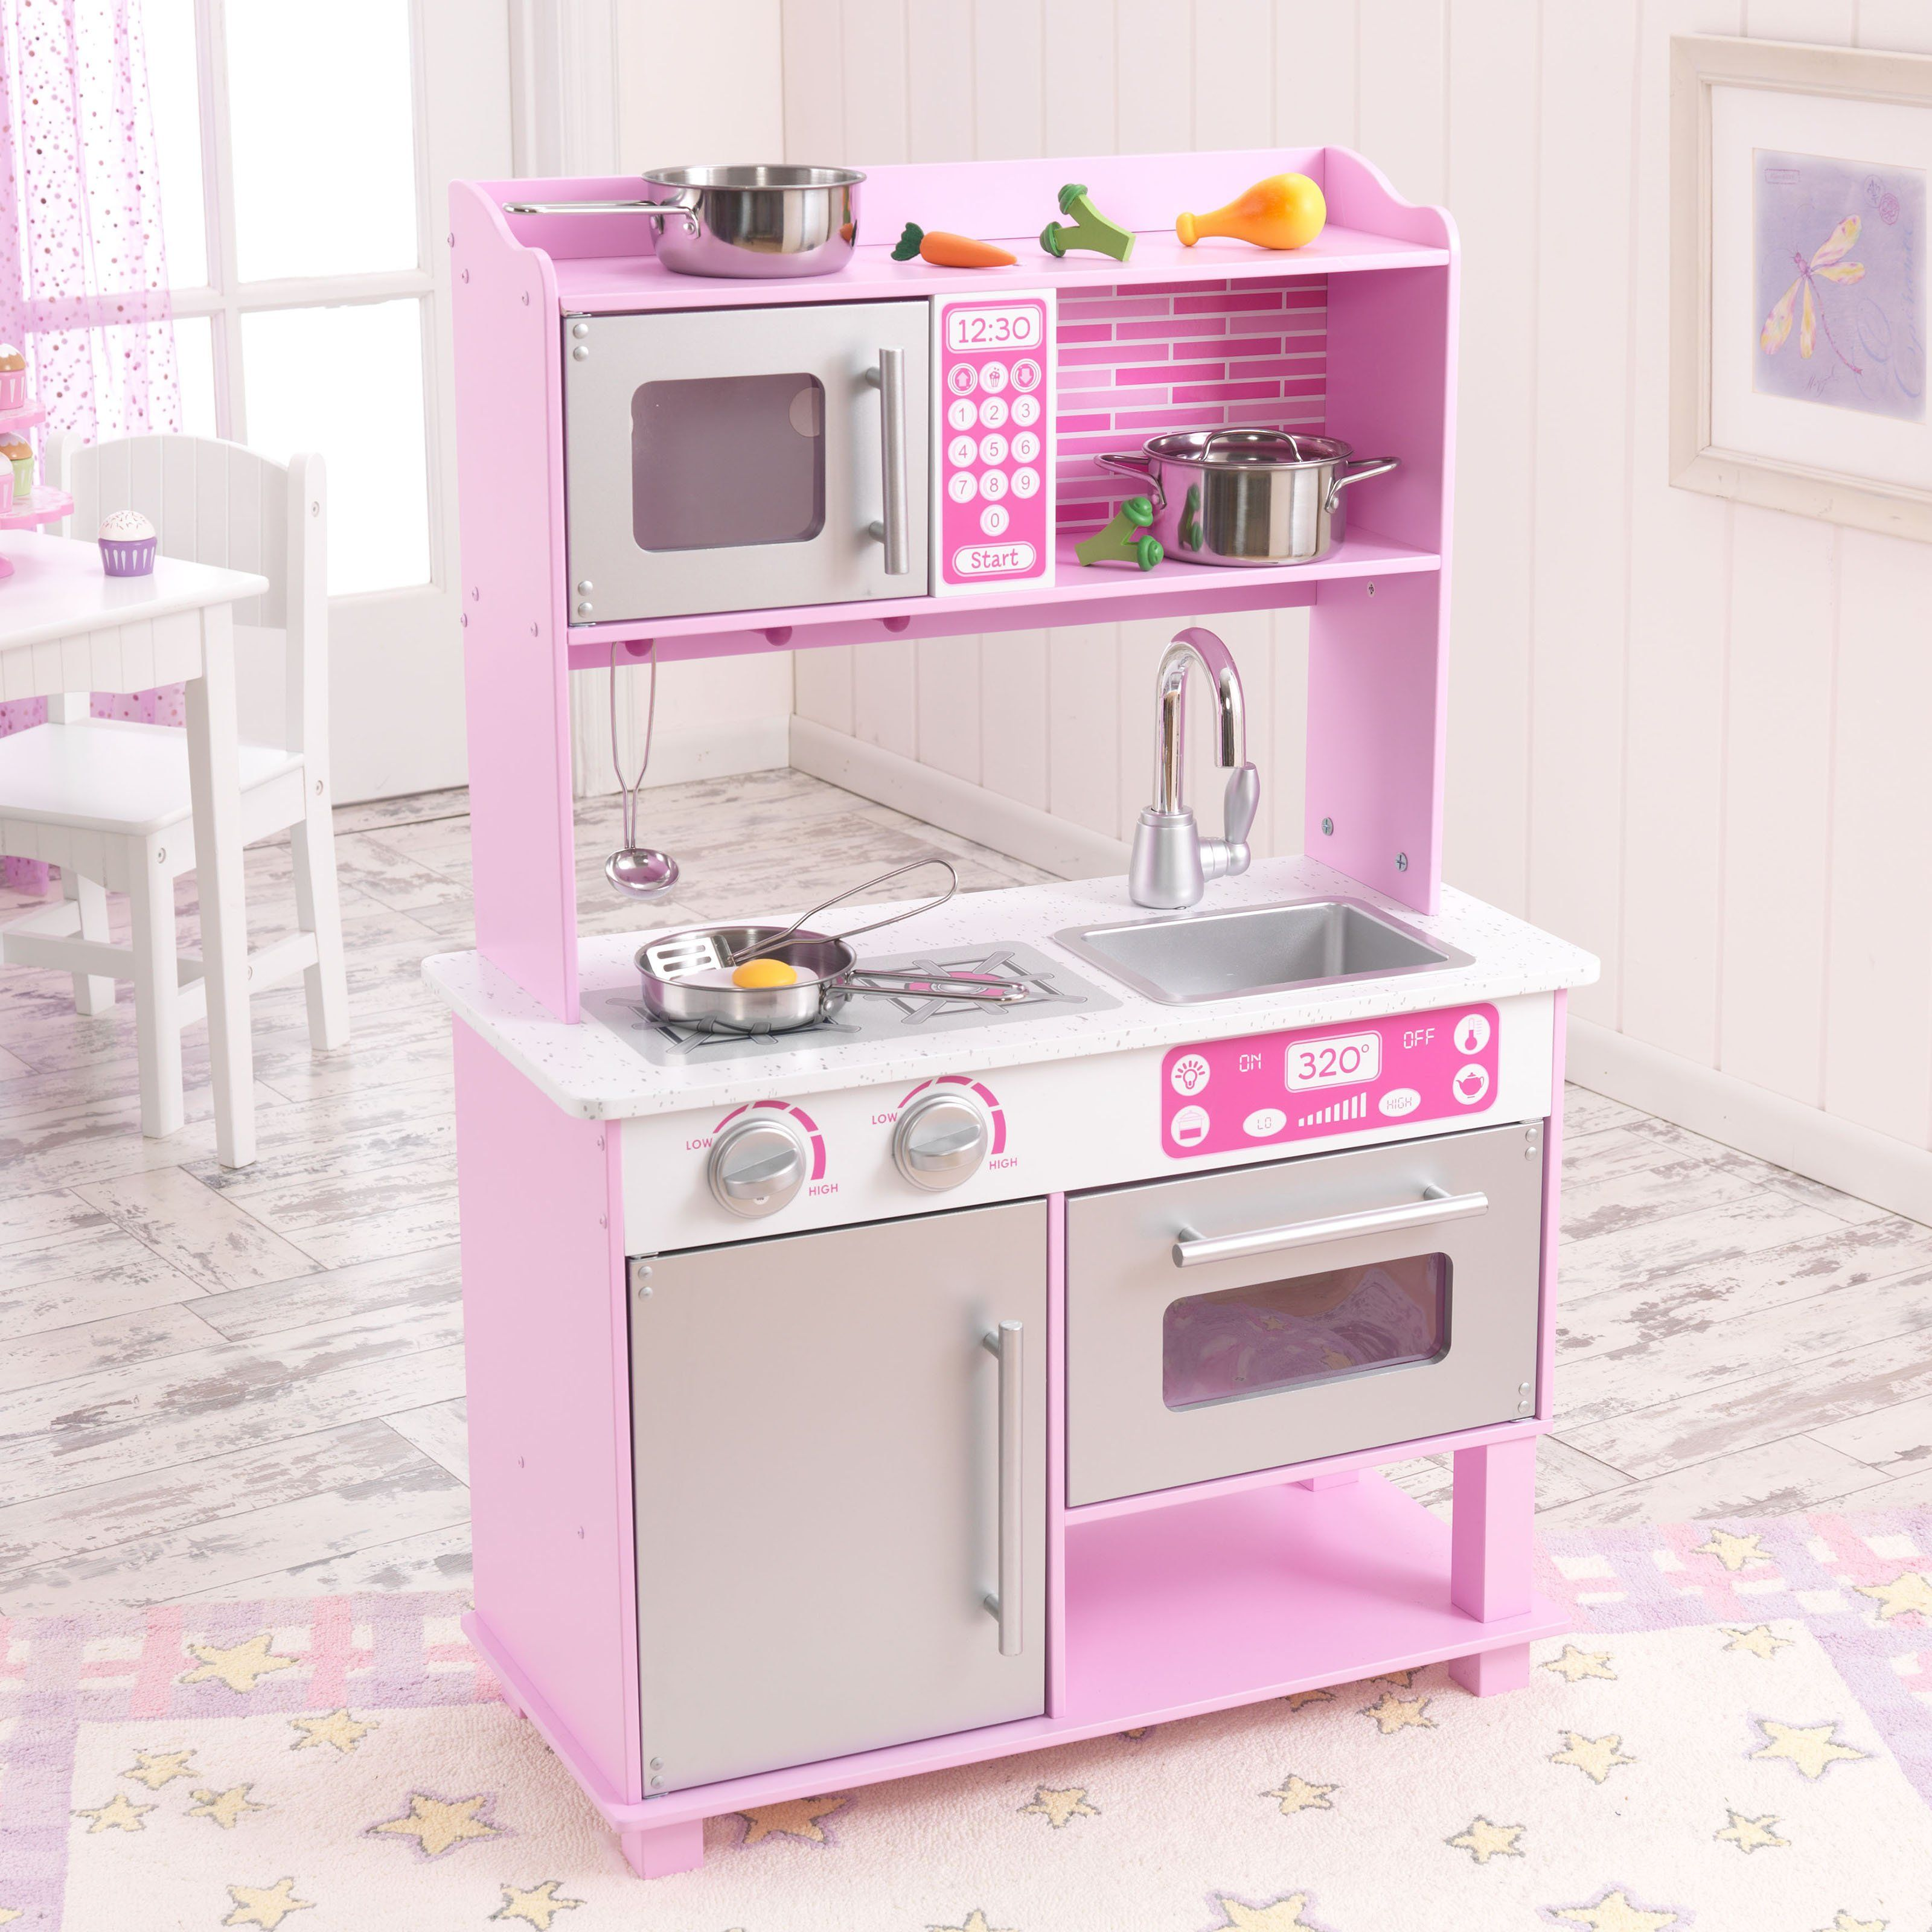 Kidkraft Pink Toddler Play Kitchen With Metal Accessory Set |  Www.playkitchens.com